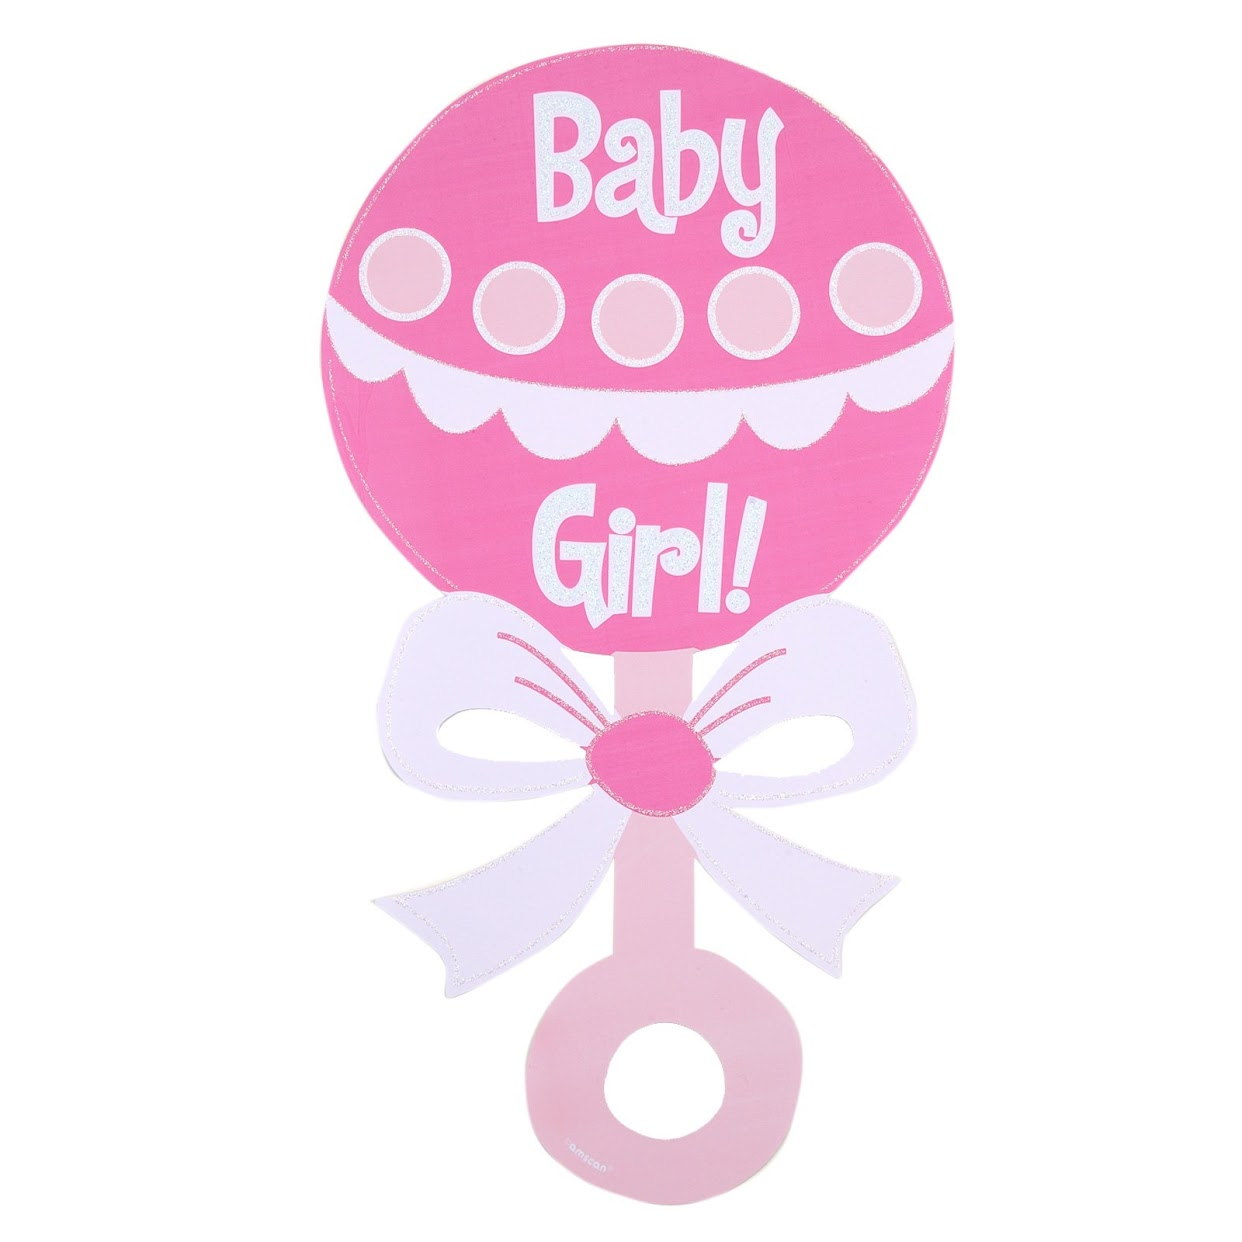 Baby girl pink clipart. Bottle kid rattle clip